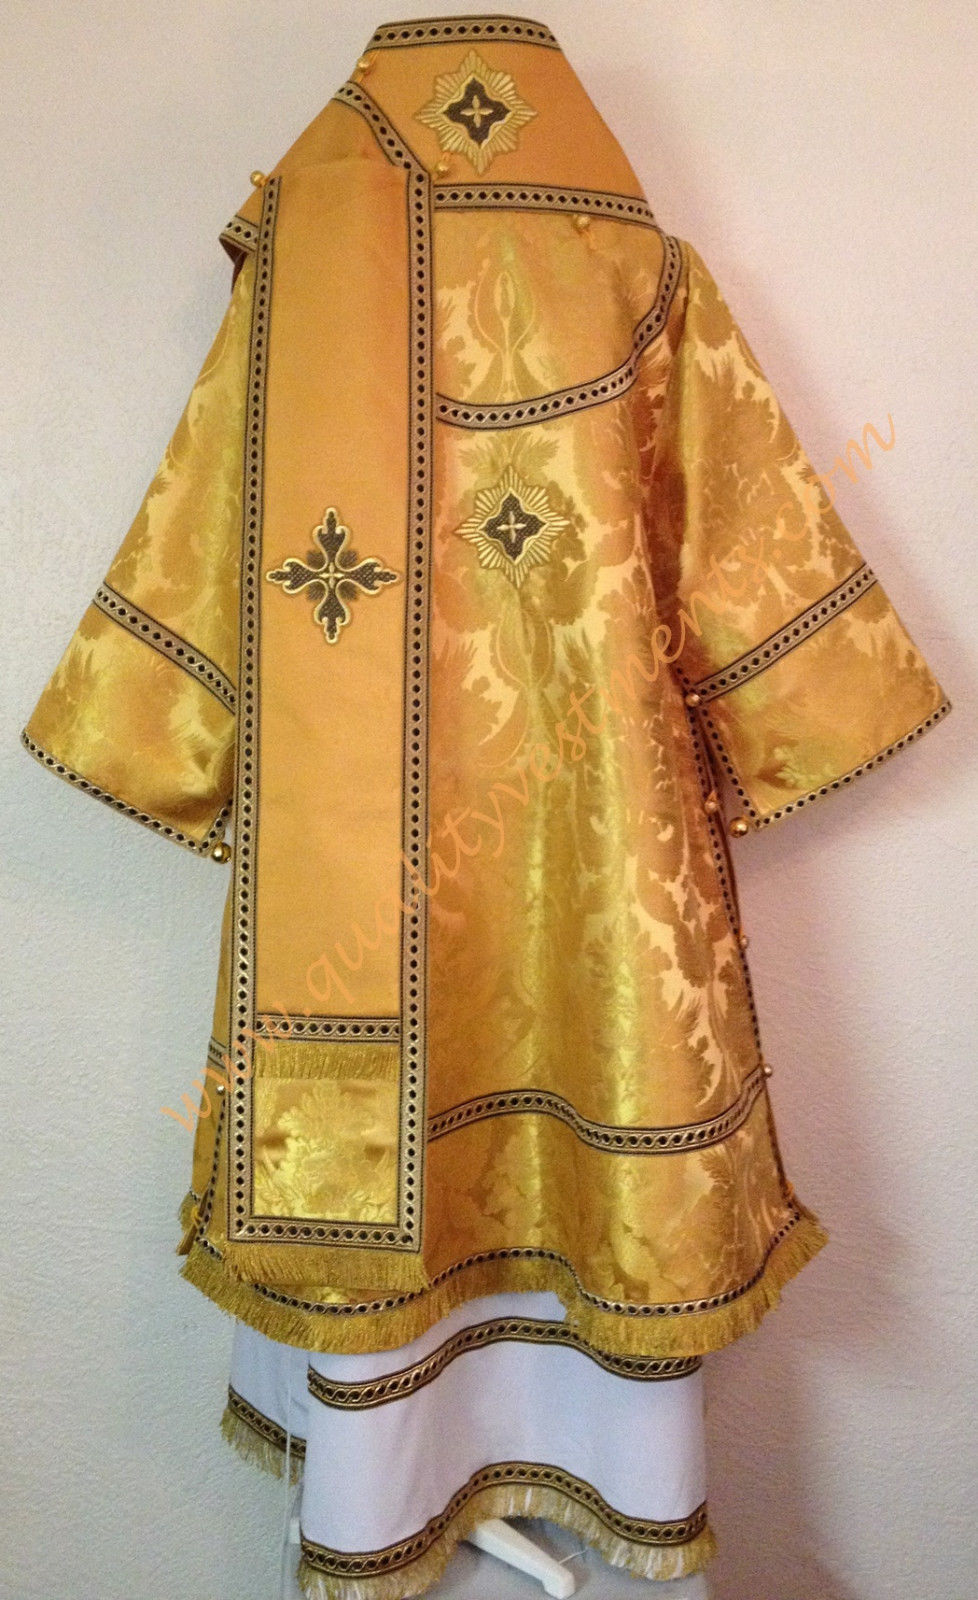 Orthodox Bishop's Vestments Metallic Brocade Gold, Black TO ORDER